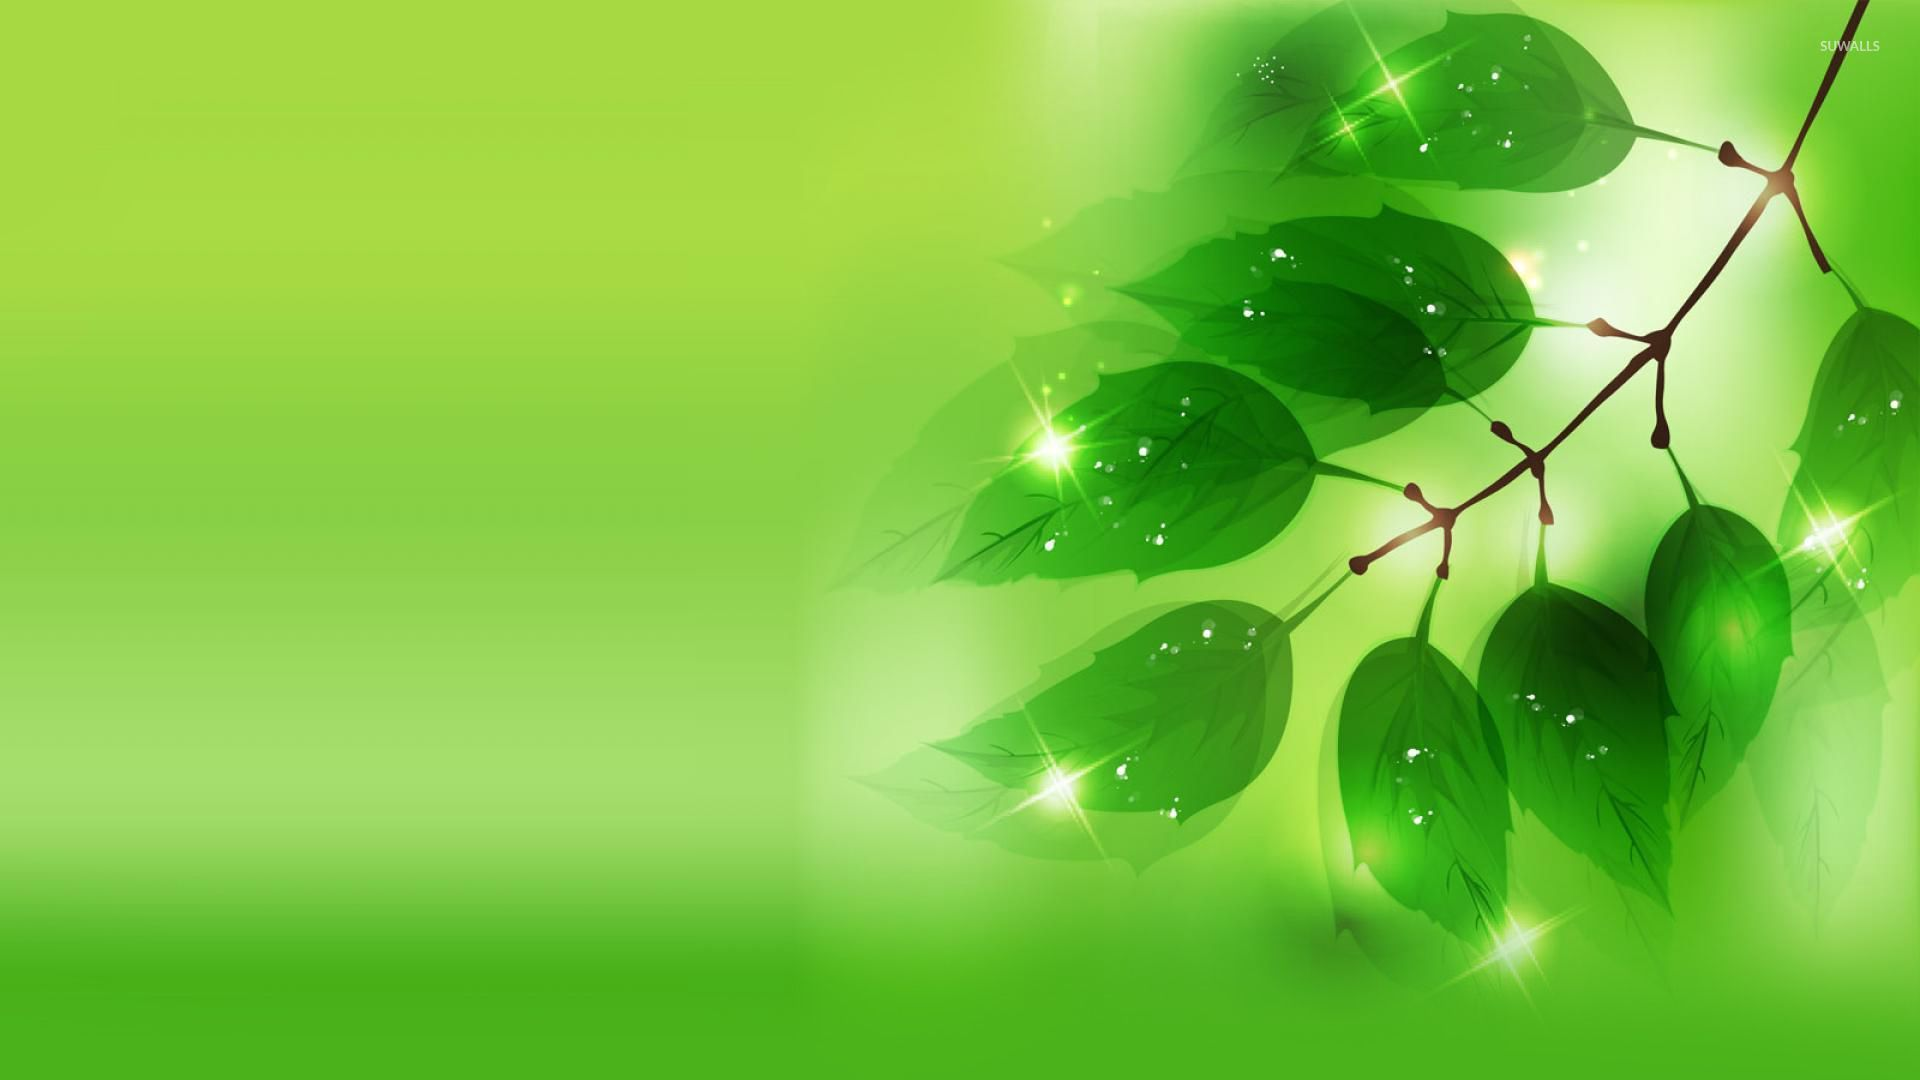 Sparkling leaves on the branch wallpaper   Digital Art 1920x1080